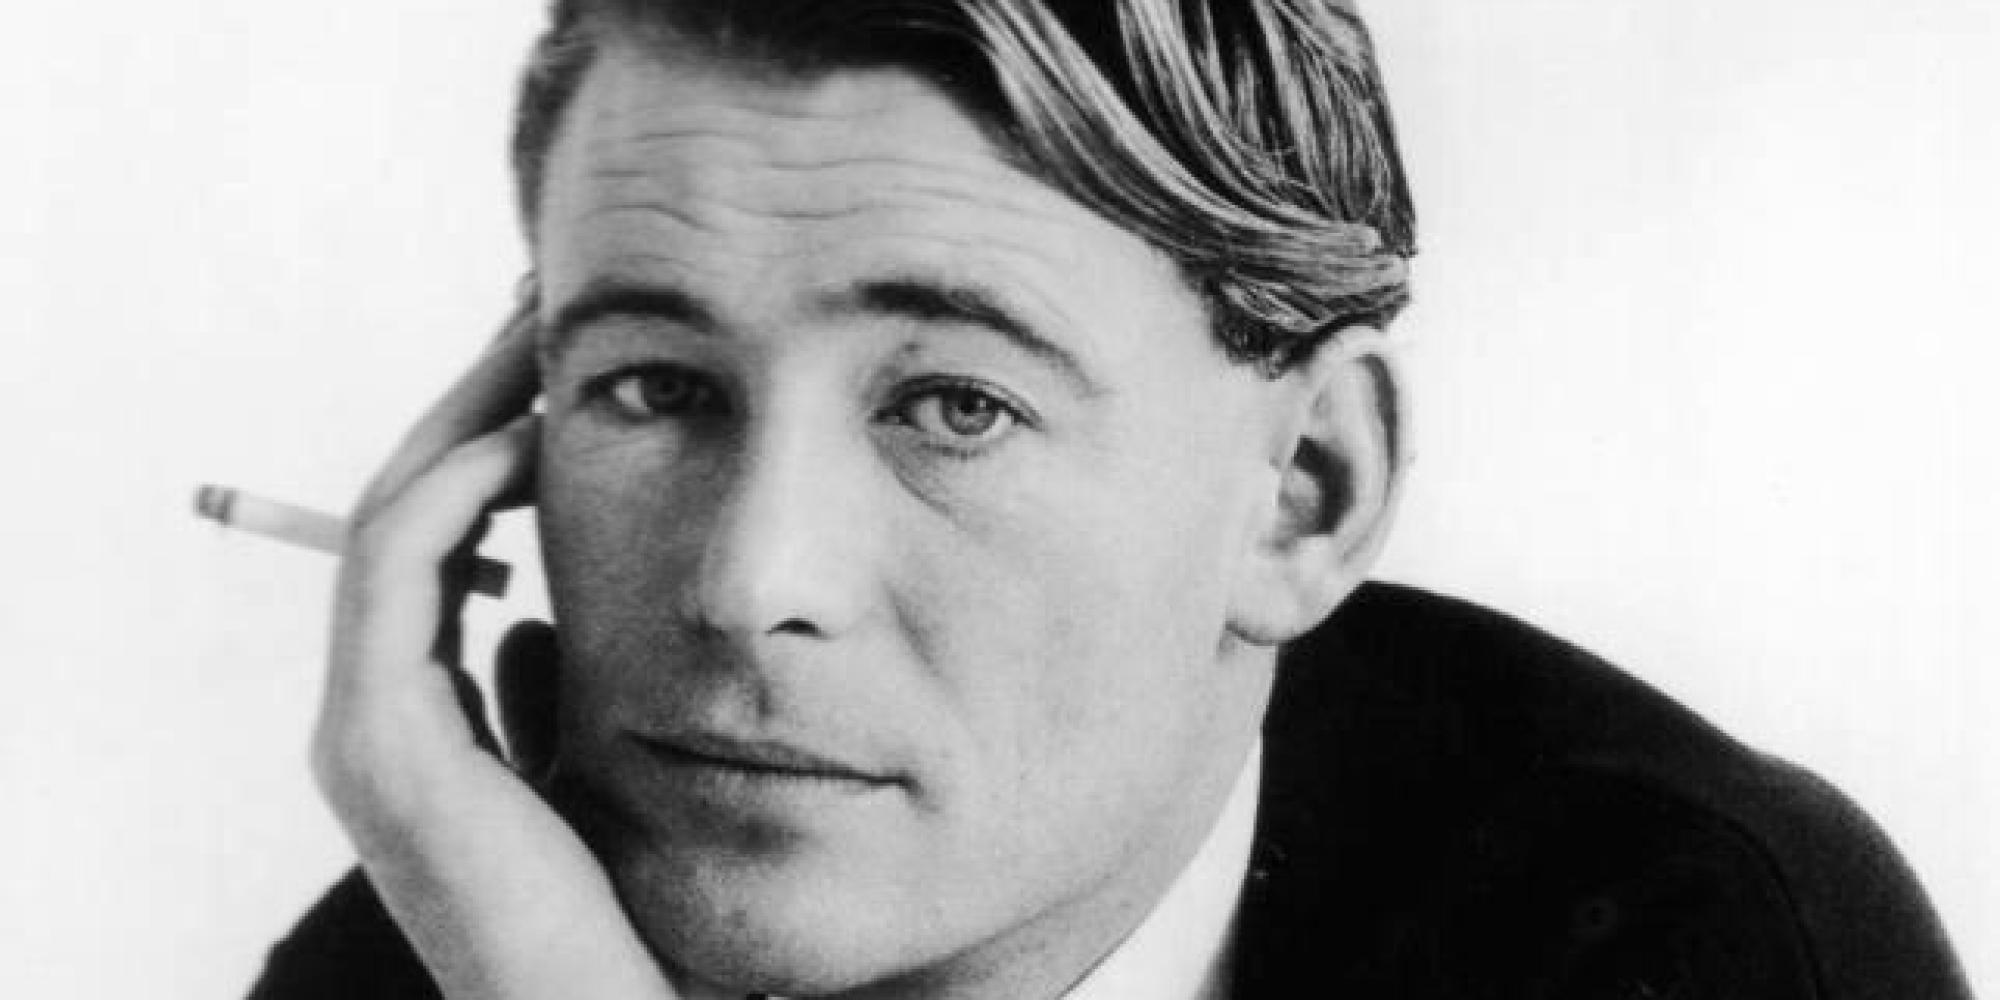 Peter O'toole Backgrounds